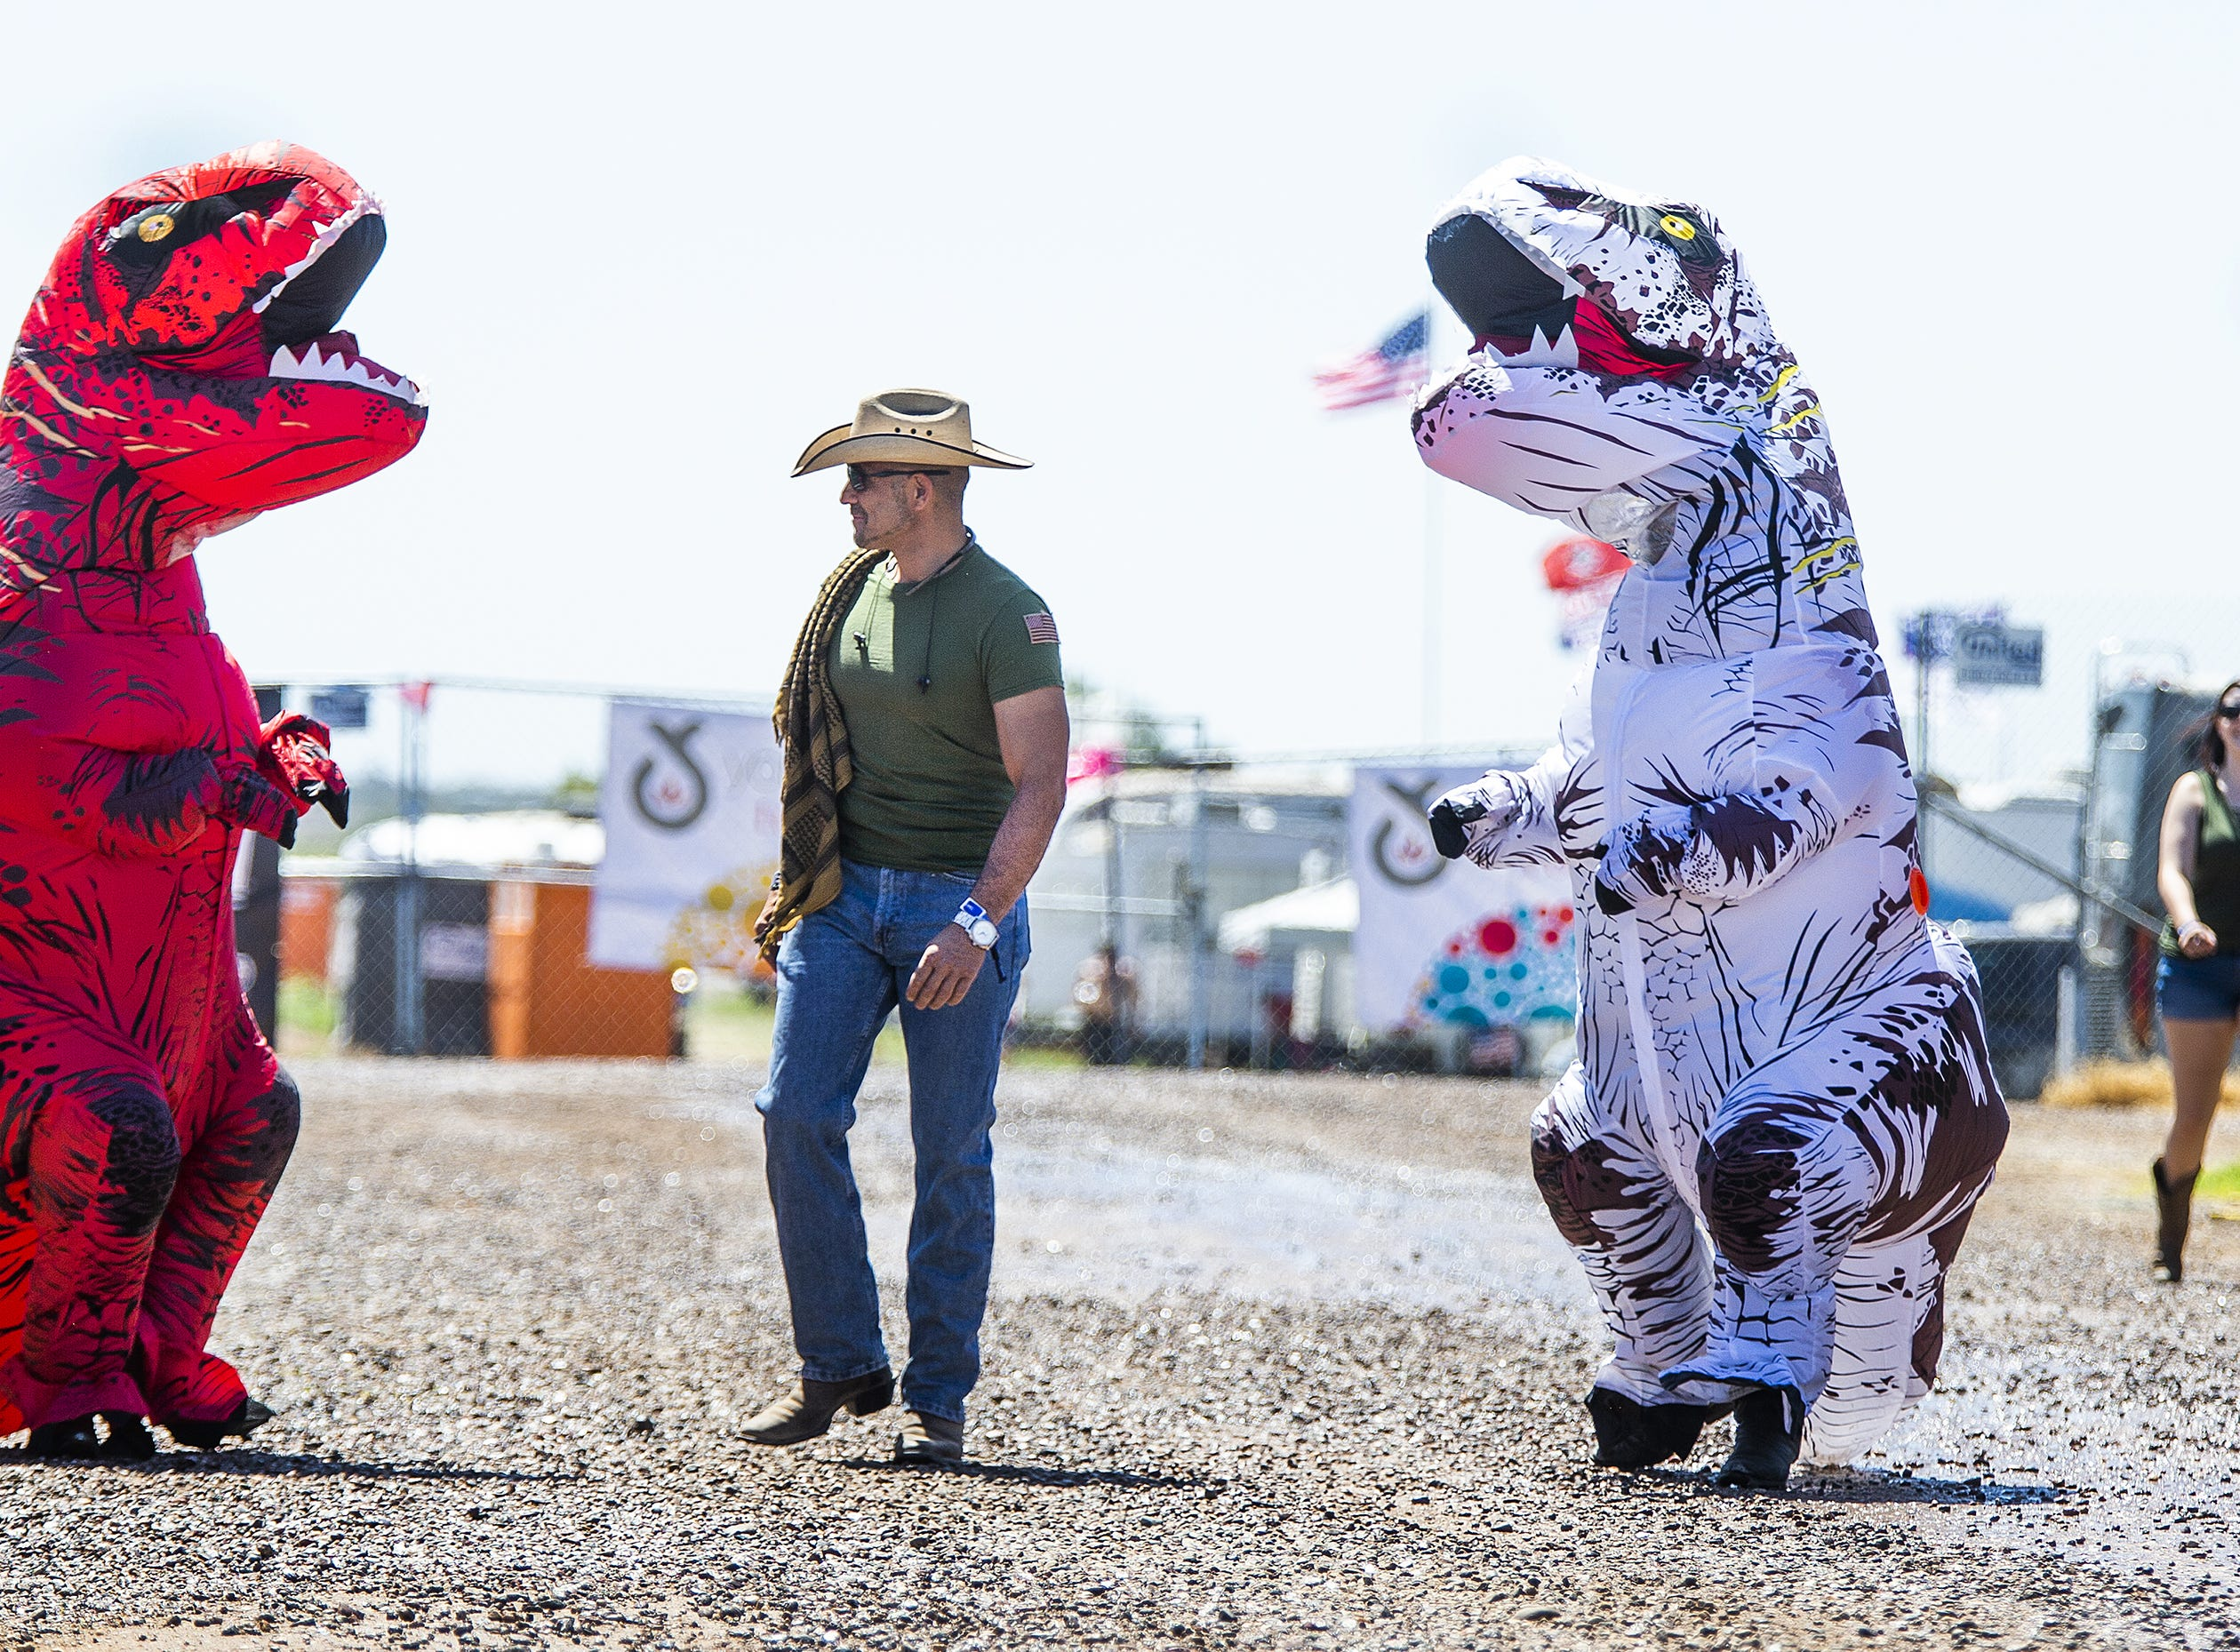 Friends from San Tan Valley decided to dress up at the Country Thunder Arizona 2019 music festival April 11, 2019. From left: Nathan Hilliard, Michael Chavez and Keith Ring.